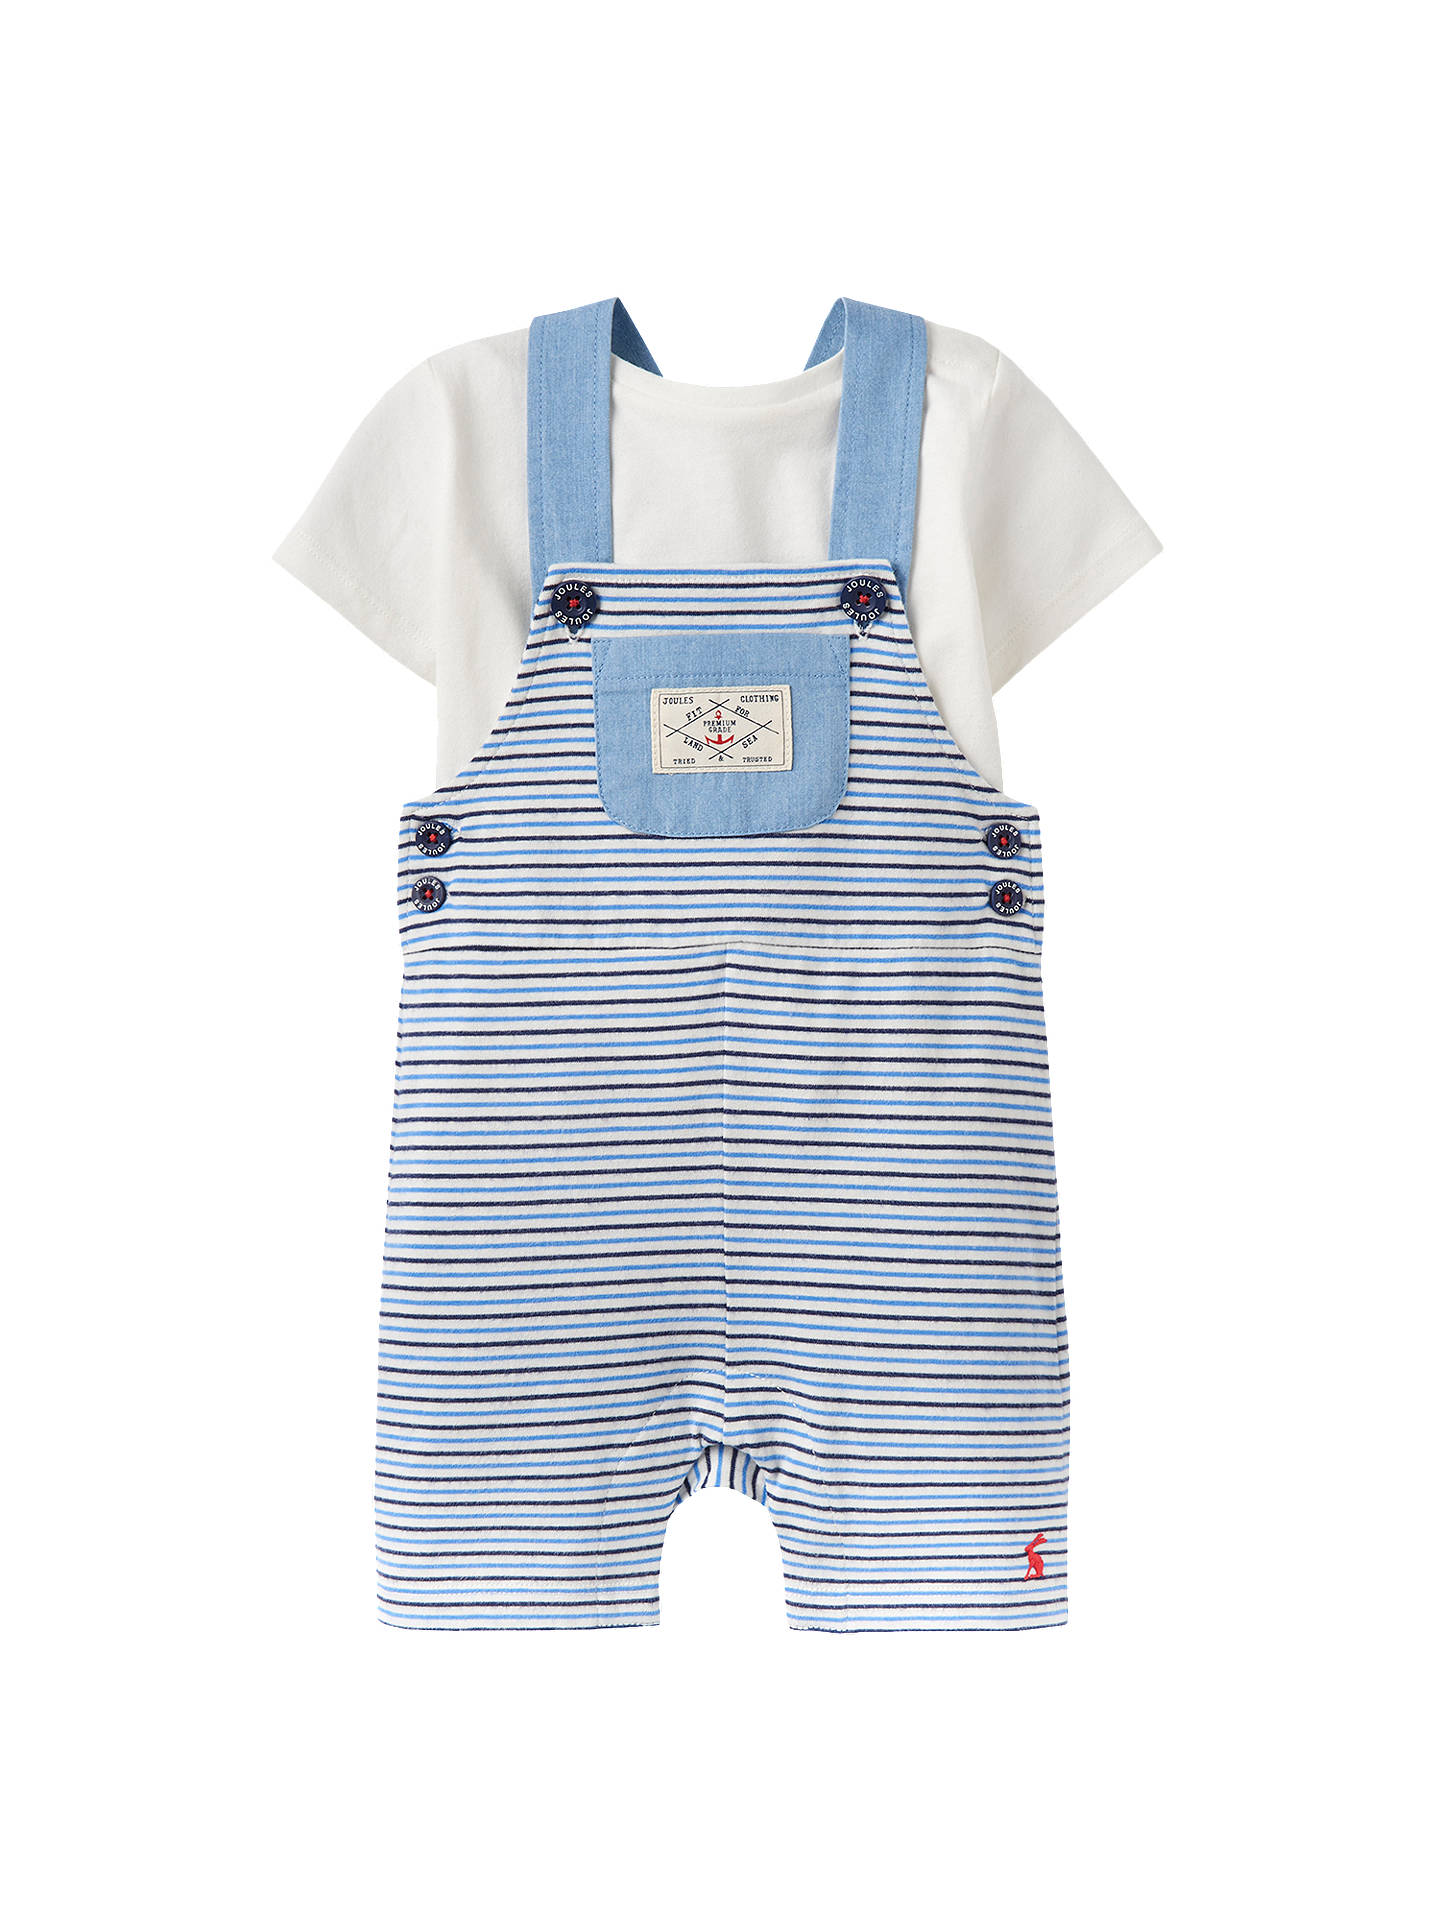 Boys' Clothing (0-24 Months) Ted Baker Baby Boy Shorts Dungarees Set 0-3 Months Modern Design